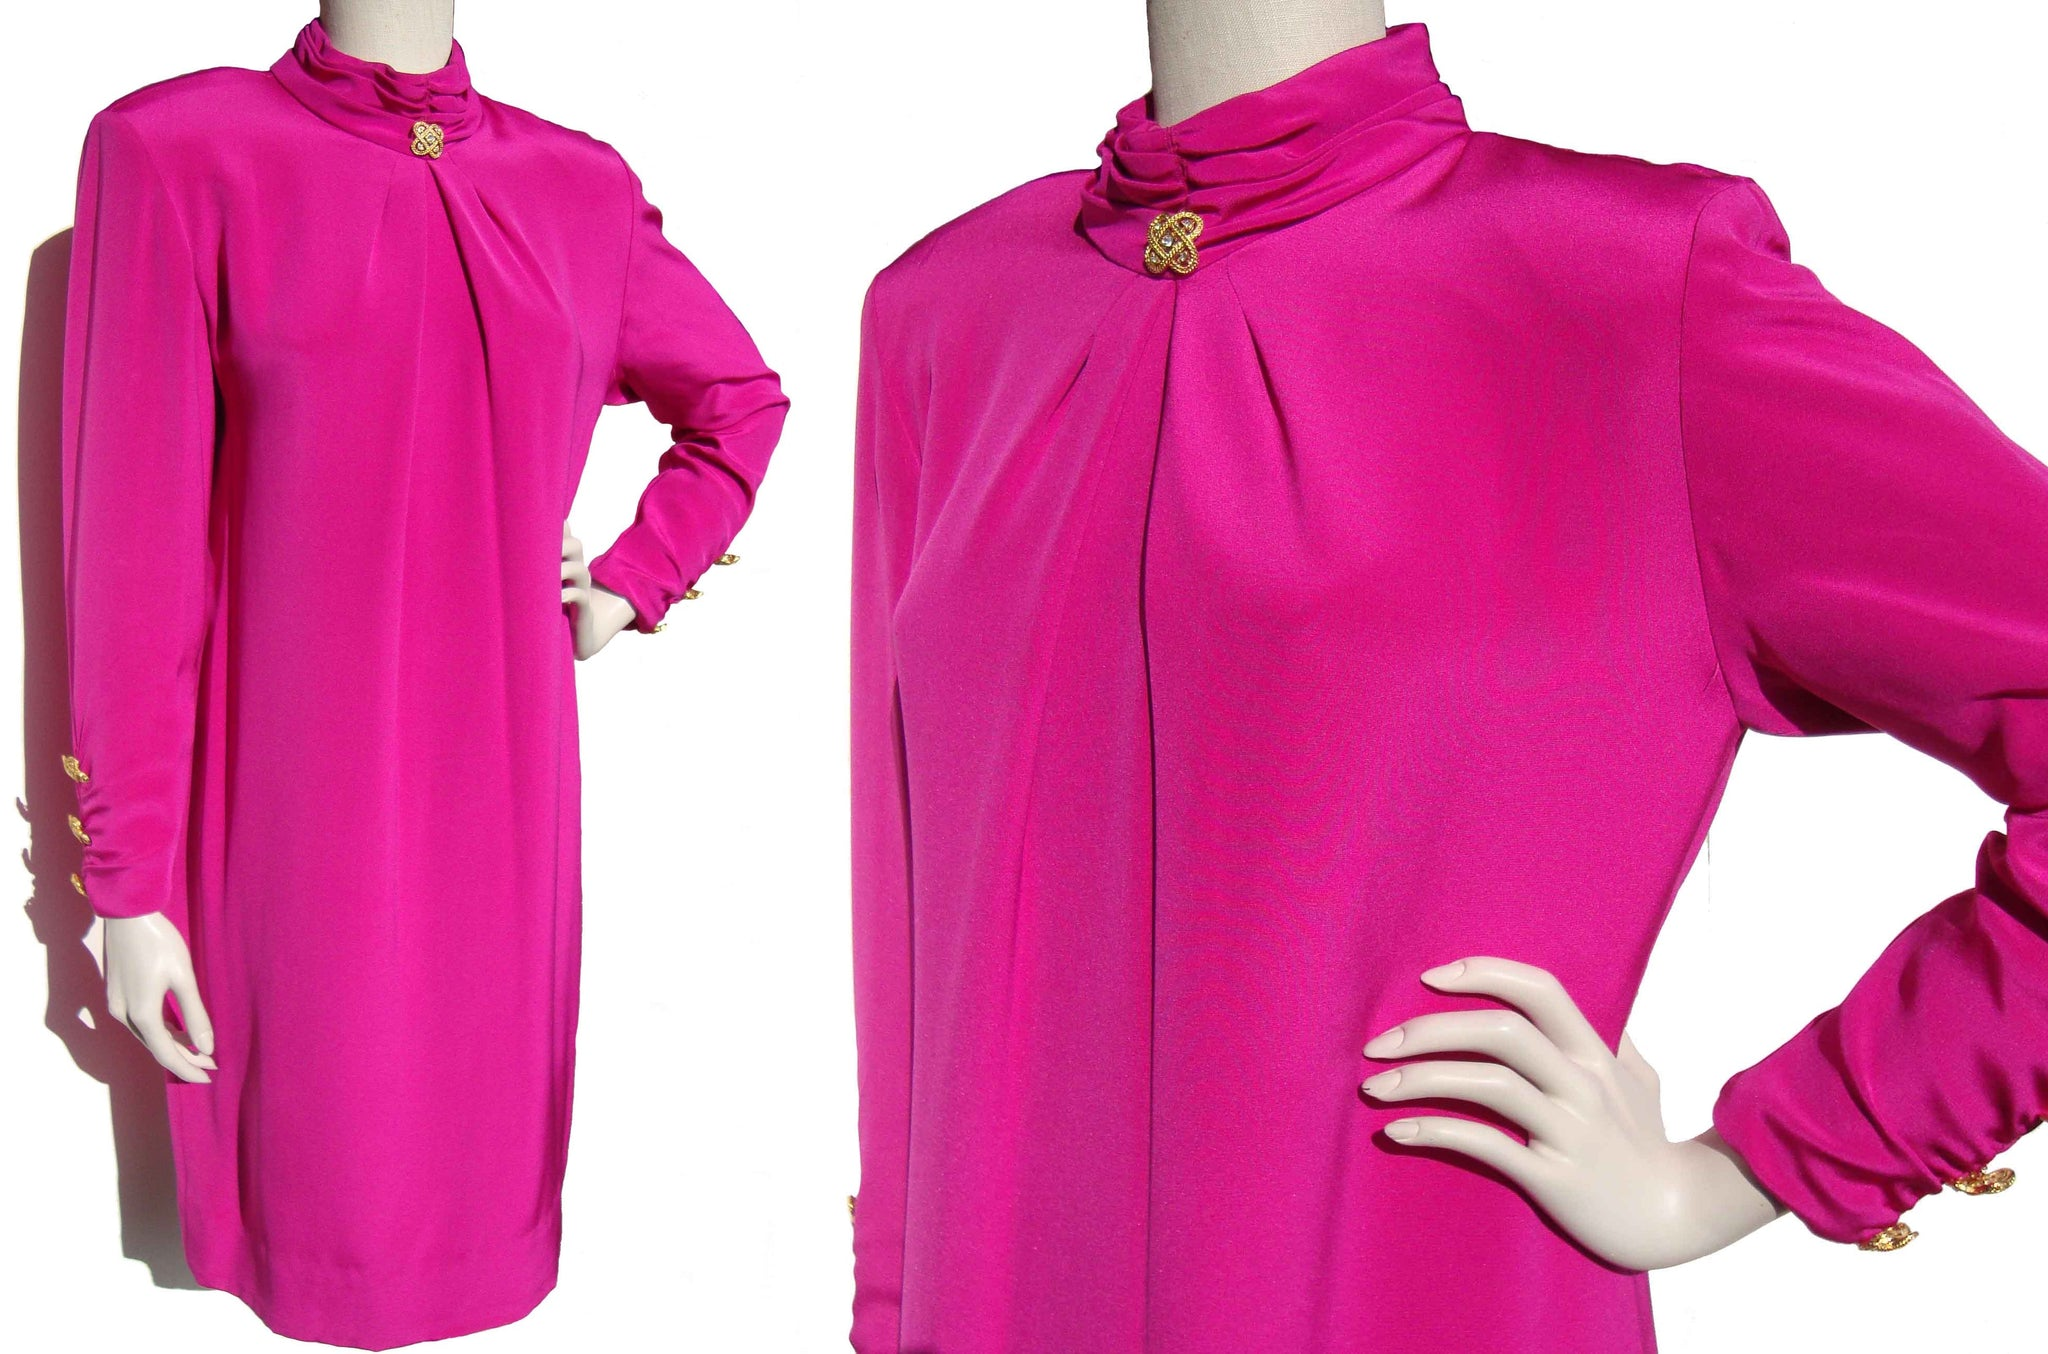 Vintage 80s Pierre Balmain Dress Pink Silk Shift w/ Novelty Buttons M